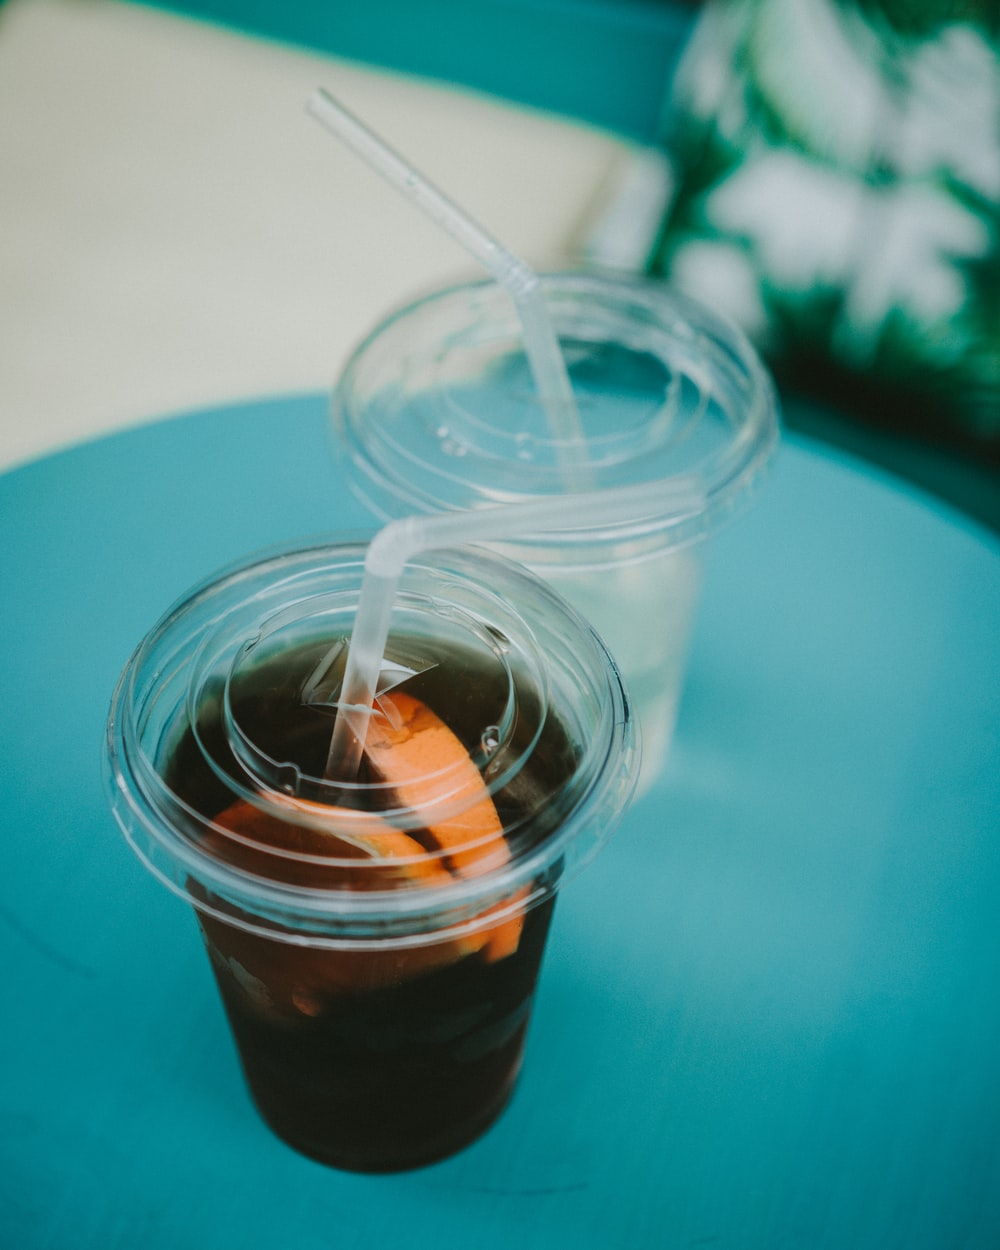 two clear plastic disposable cup with black liquid